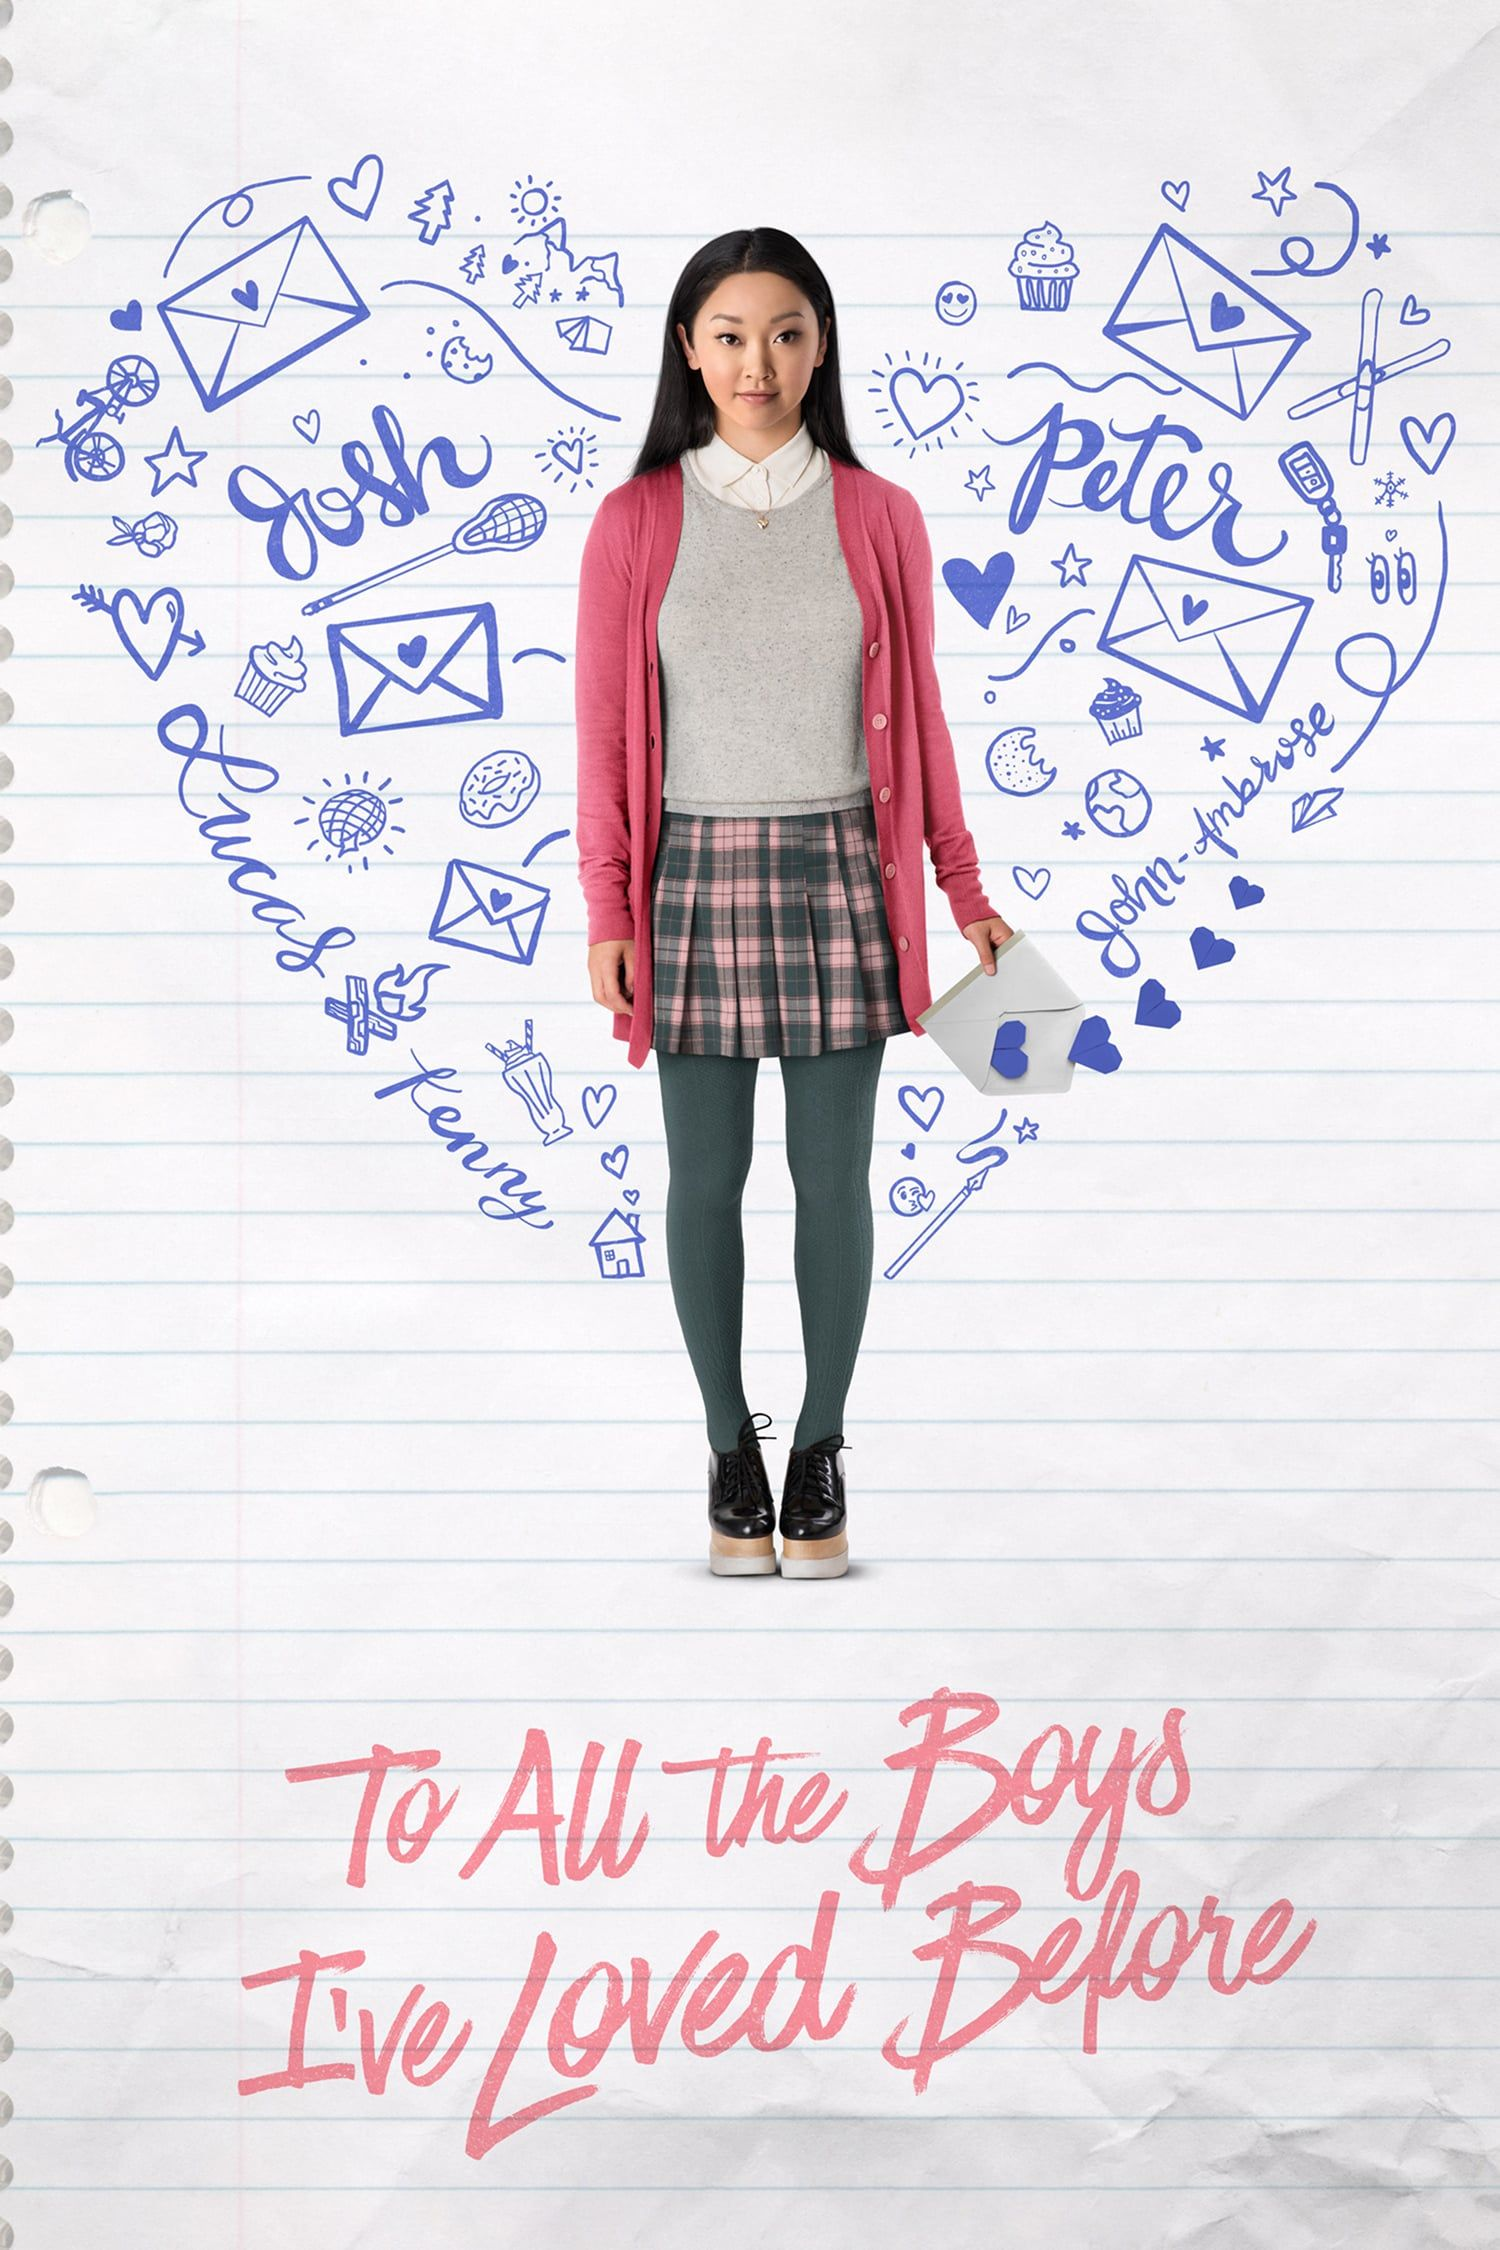 123movies Hd To All The Boys I Ve Loved Before Free